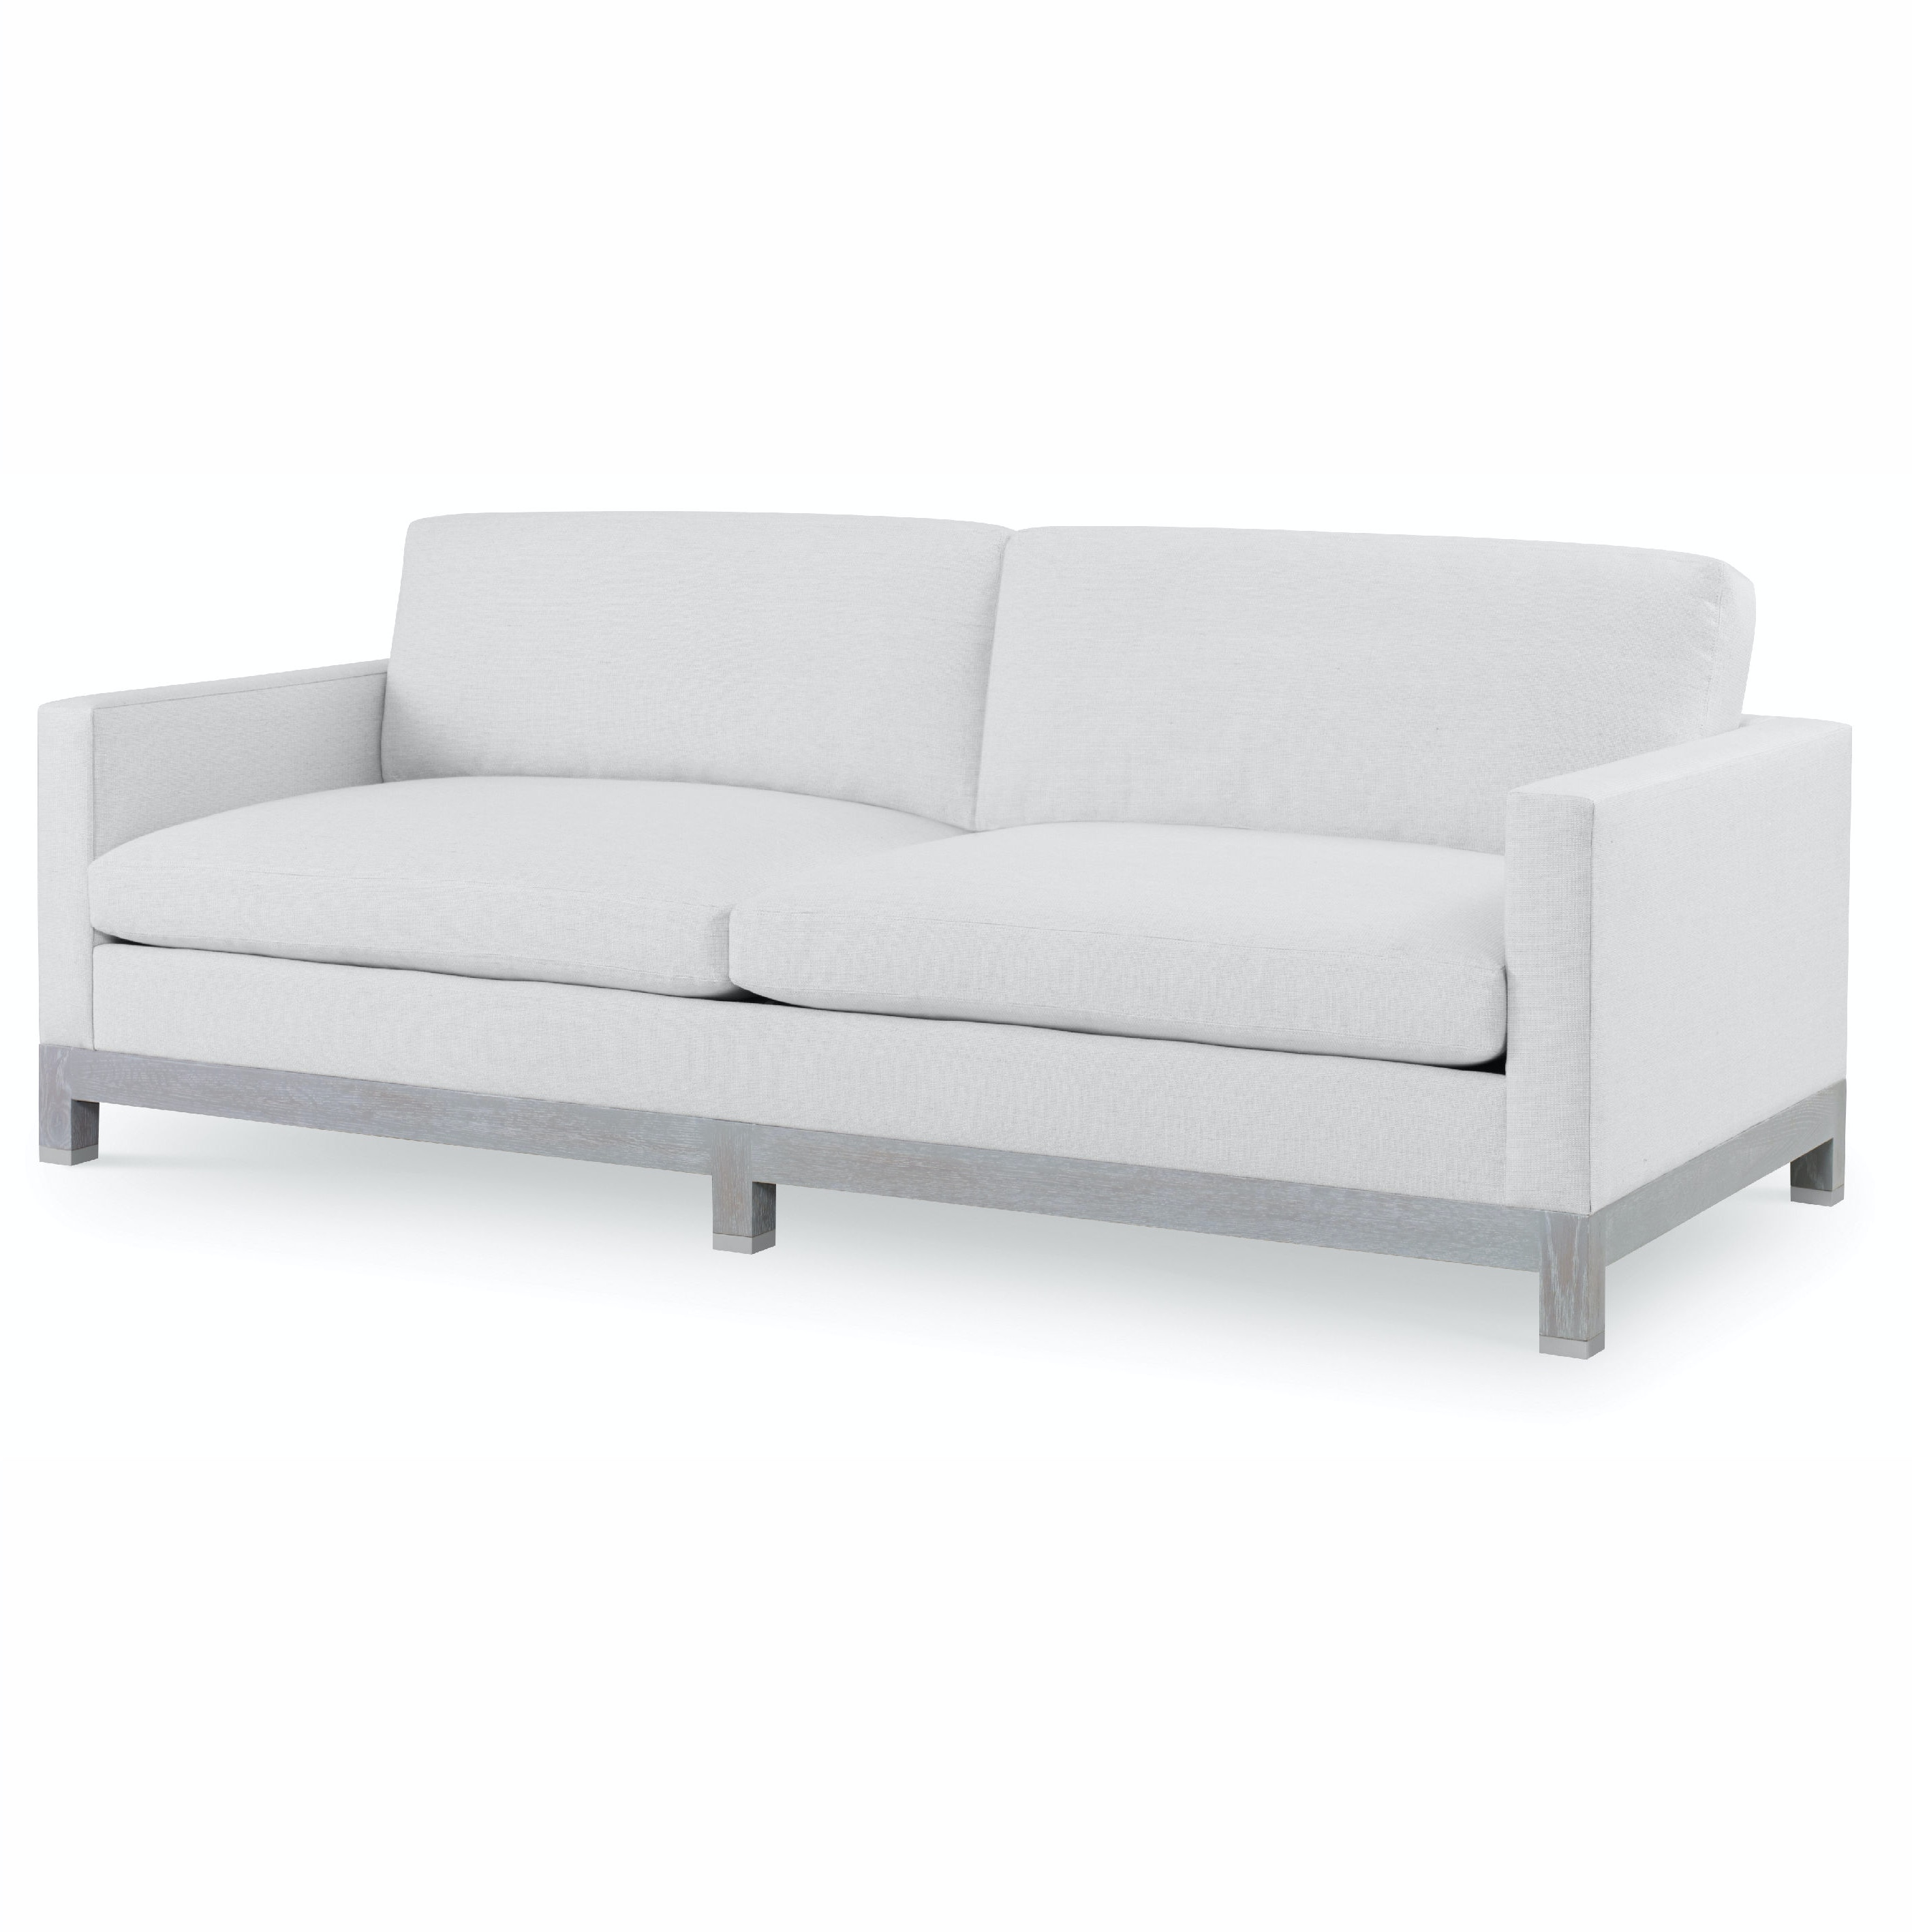 Kravet Meadow Lane Sofa FS9780 Kravet New York NY